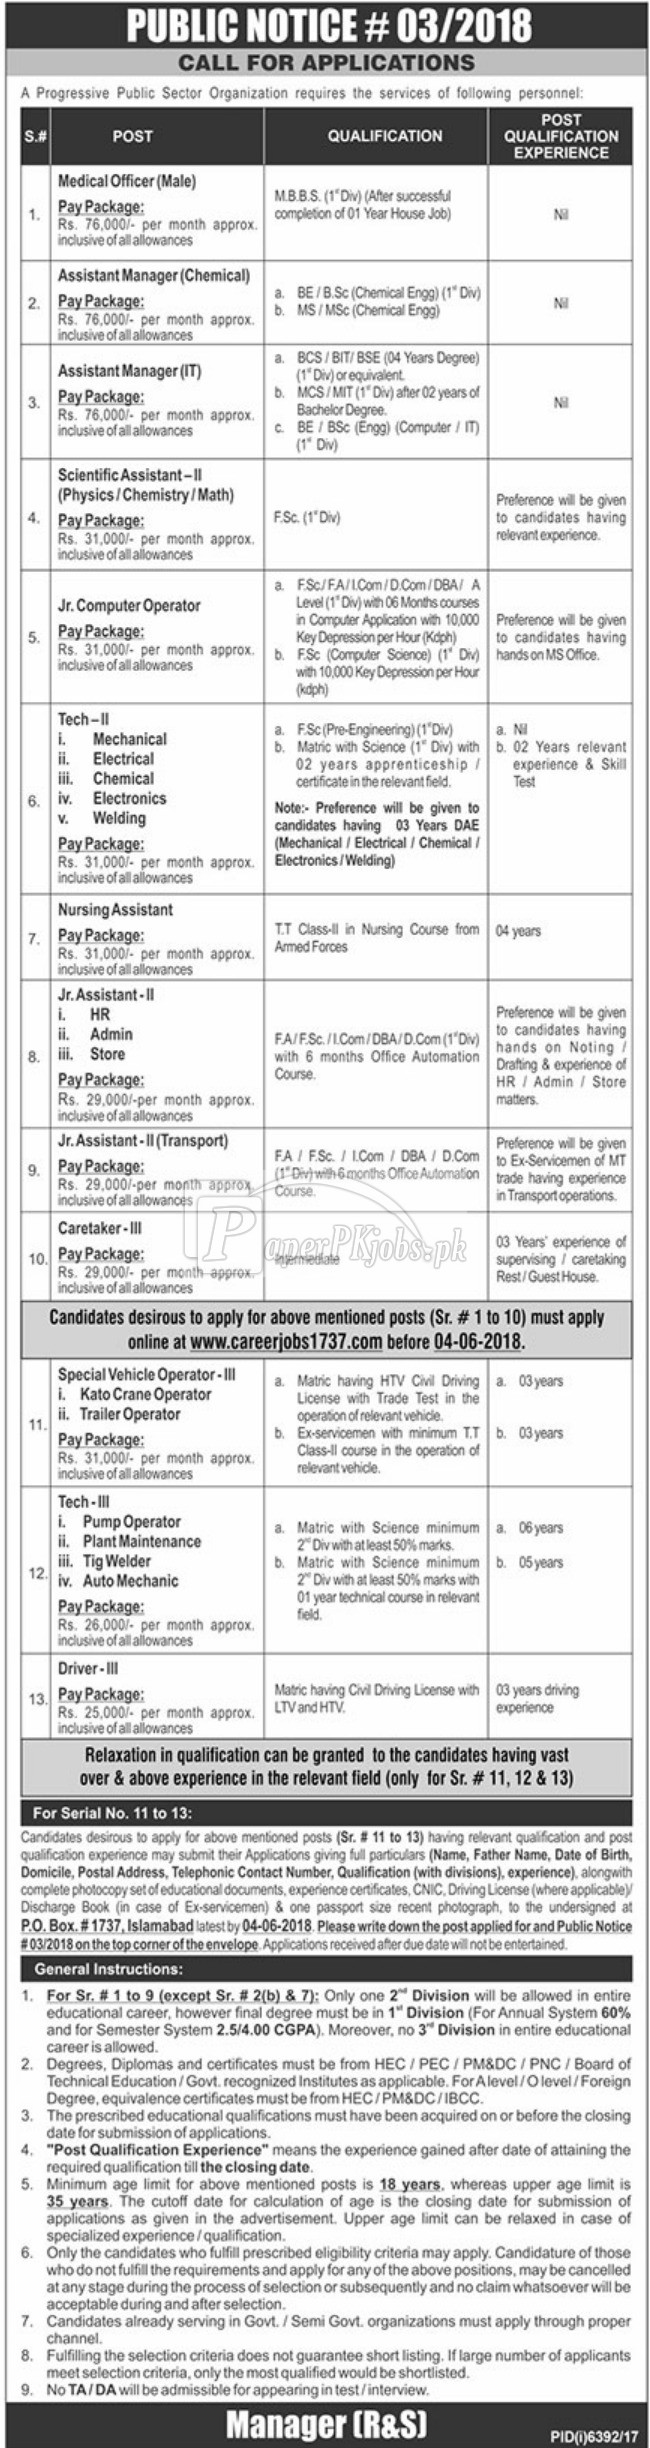 Public Sector Organization P.O. Box 1737 Islamabad Jobs 2018